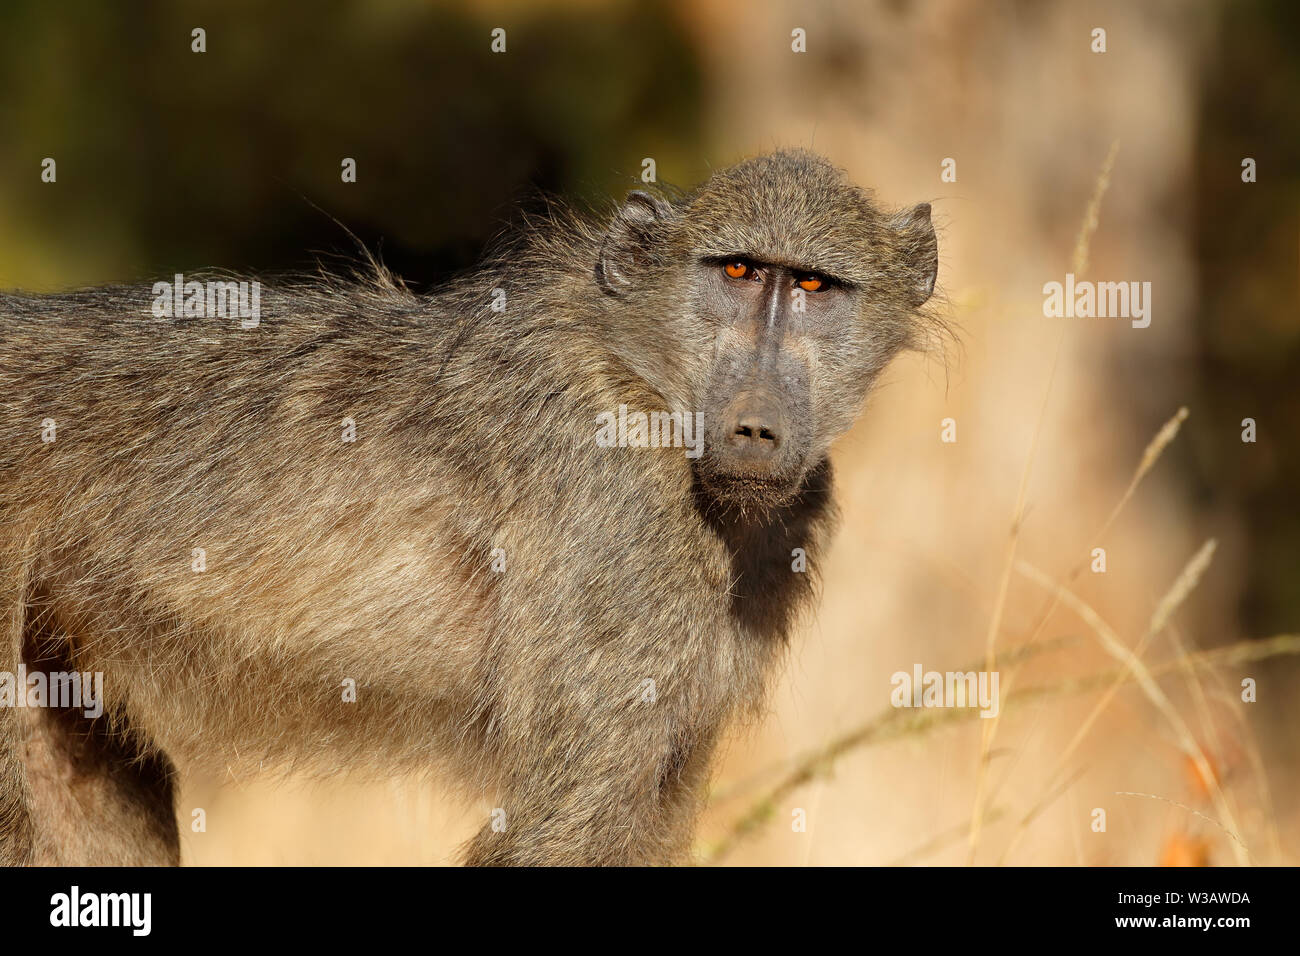 Young chacma baboon (Papio ursinus), Kruger National Park, South Africa Stock Photo